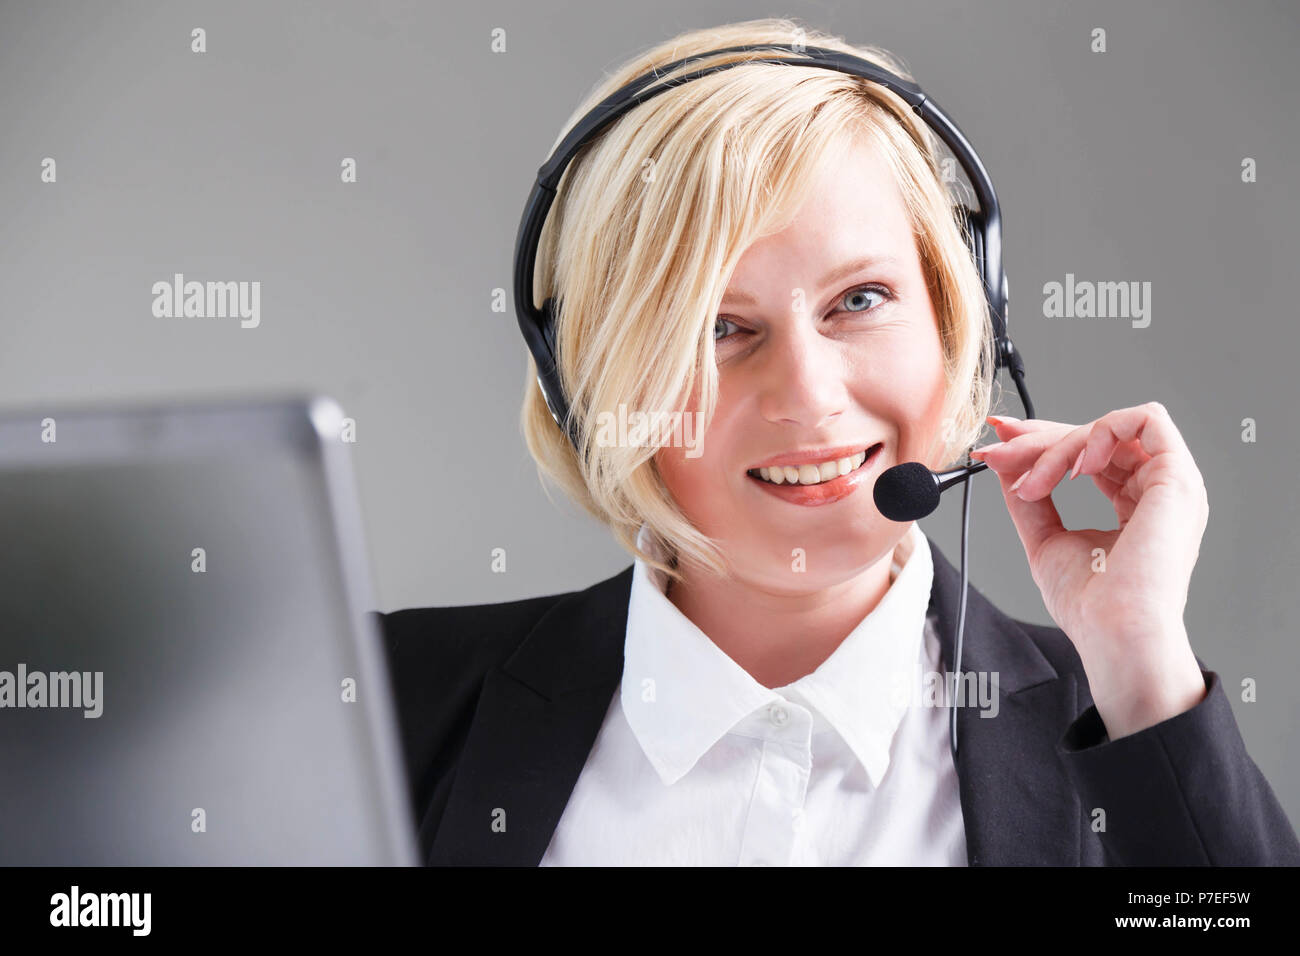 Smiling woman, call center operator dressed in black stylish suit with headset earphones Stock Photo